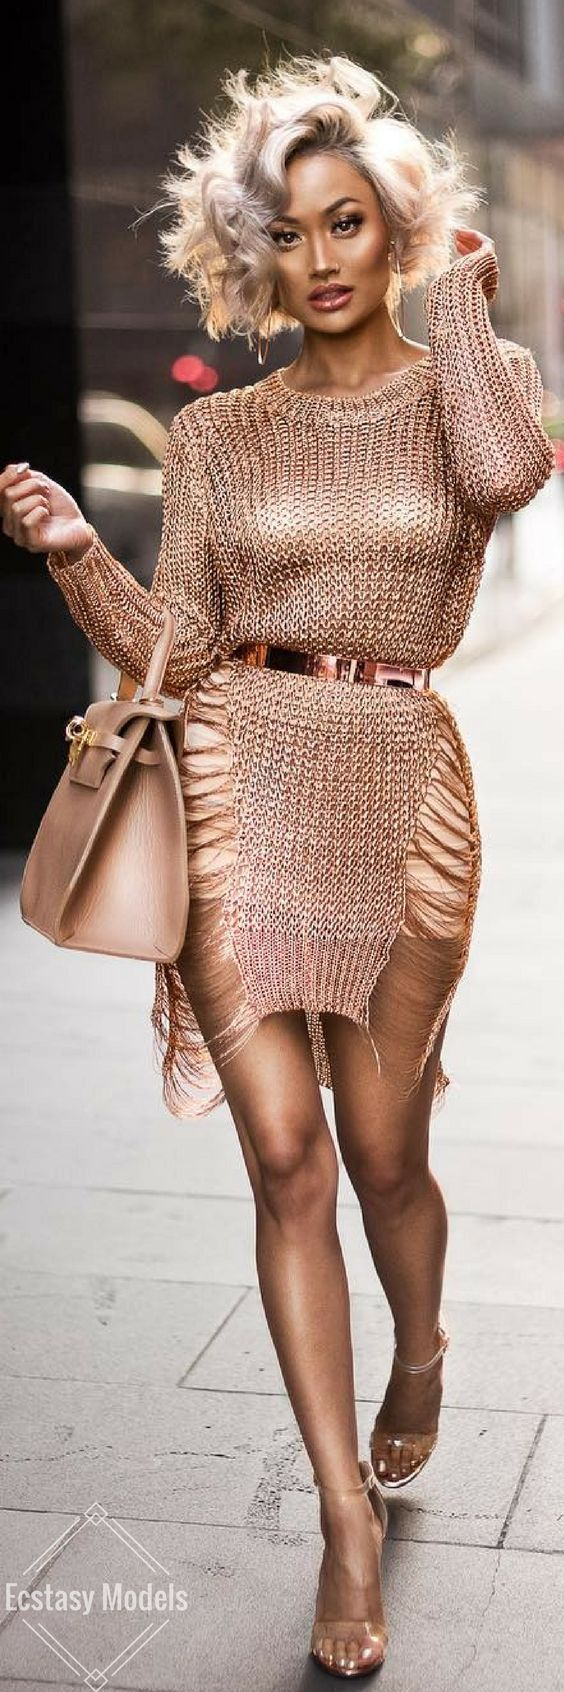 Sweater dress fashion pictures